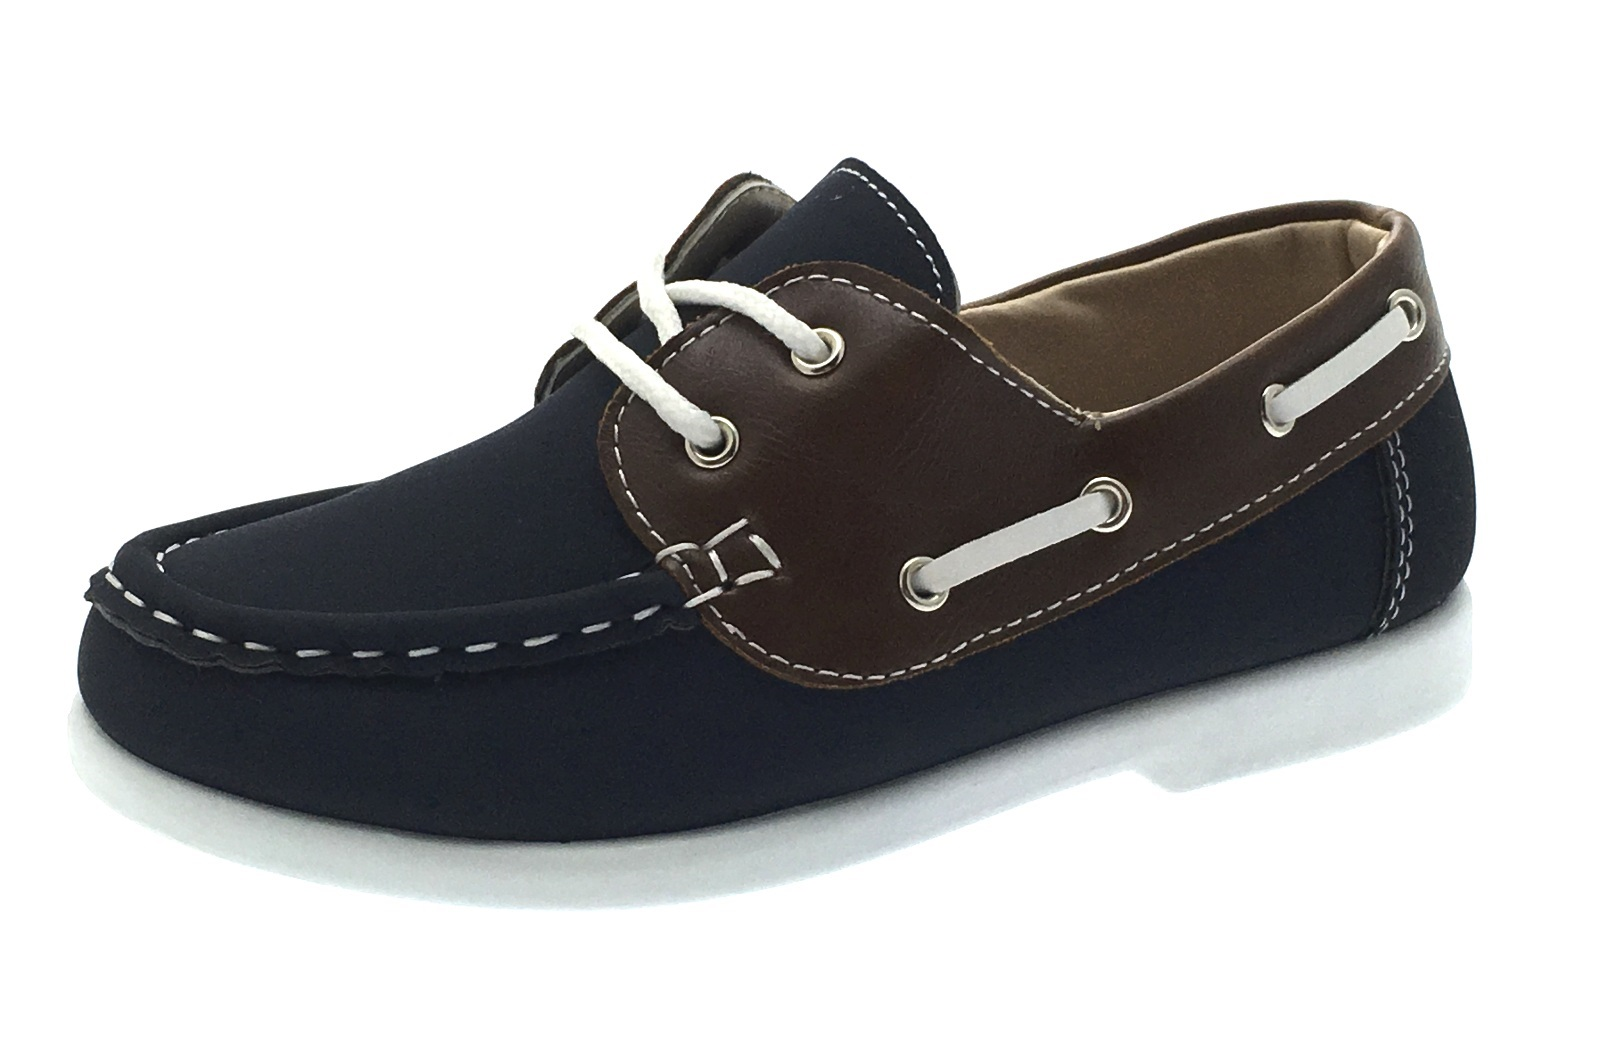 Boys Boat Deck Shoes Slip On Lace Up